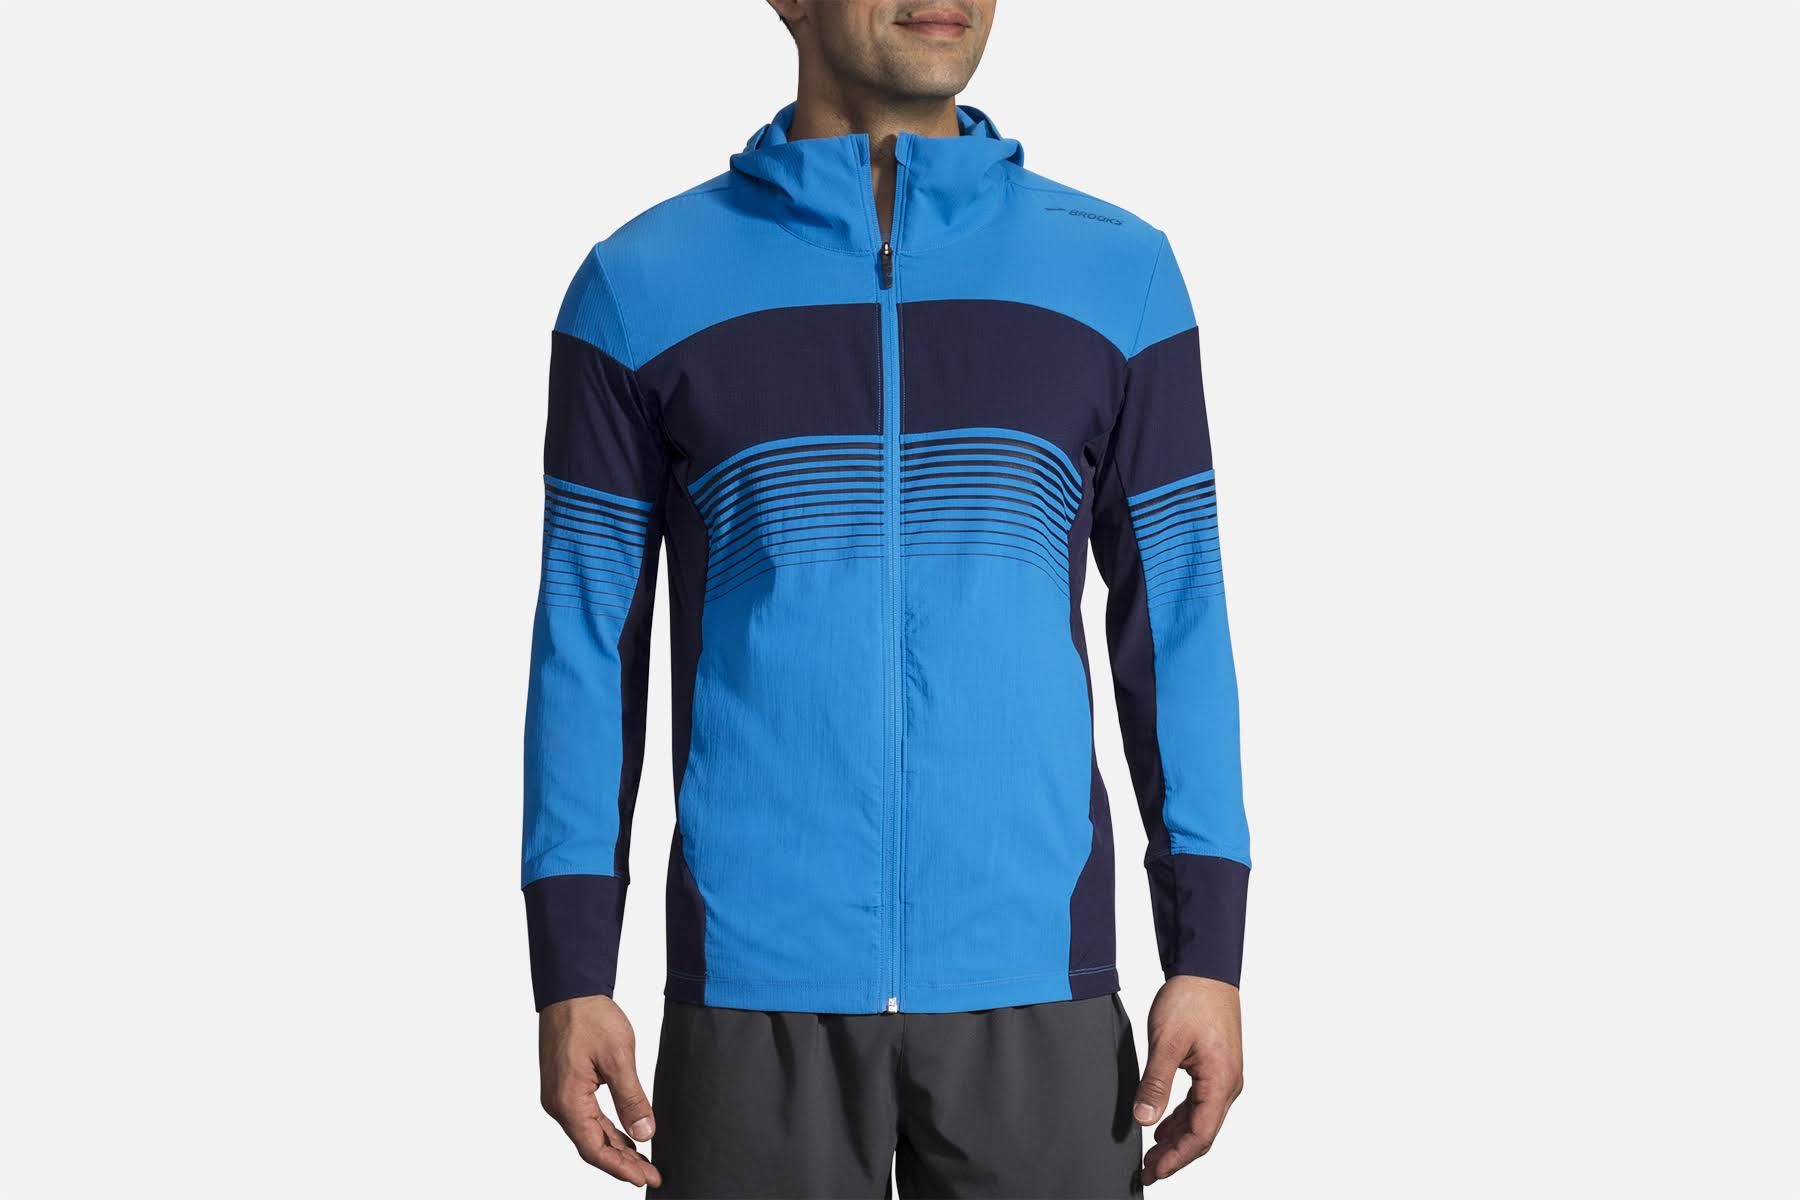 Stripe Small Navy Größe Azul Jacket Running Brooks Canopy Herren 4qgRxwXn08